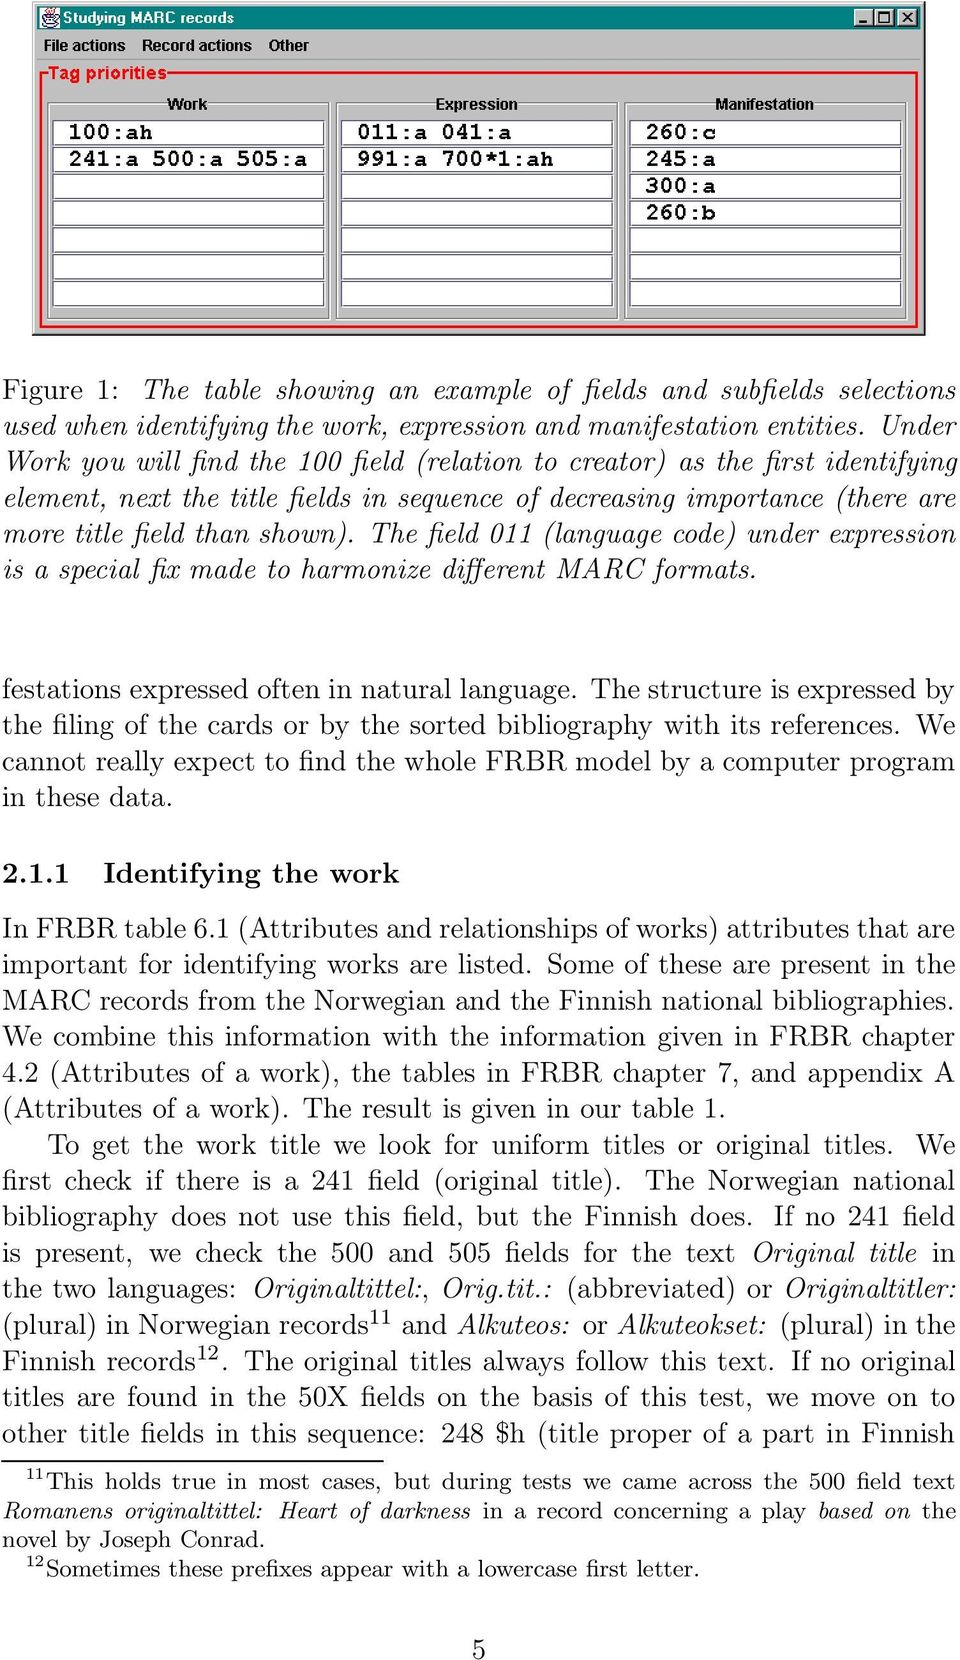 The field 011 (language code) under expression is a special fix made to harmonize different MARC formats. festations expressed often in natural language.